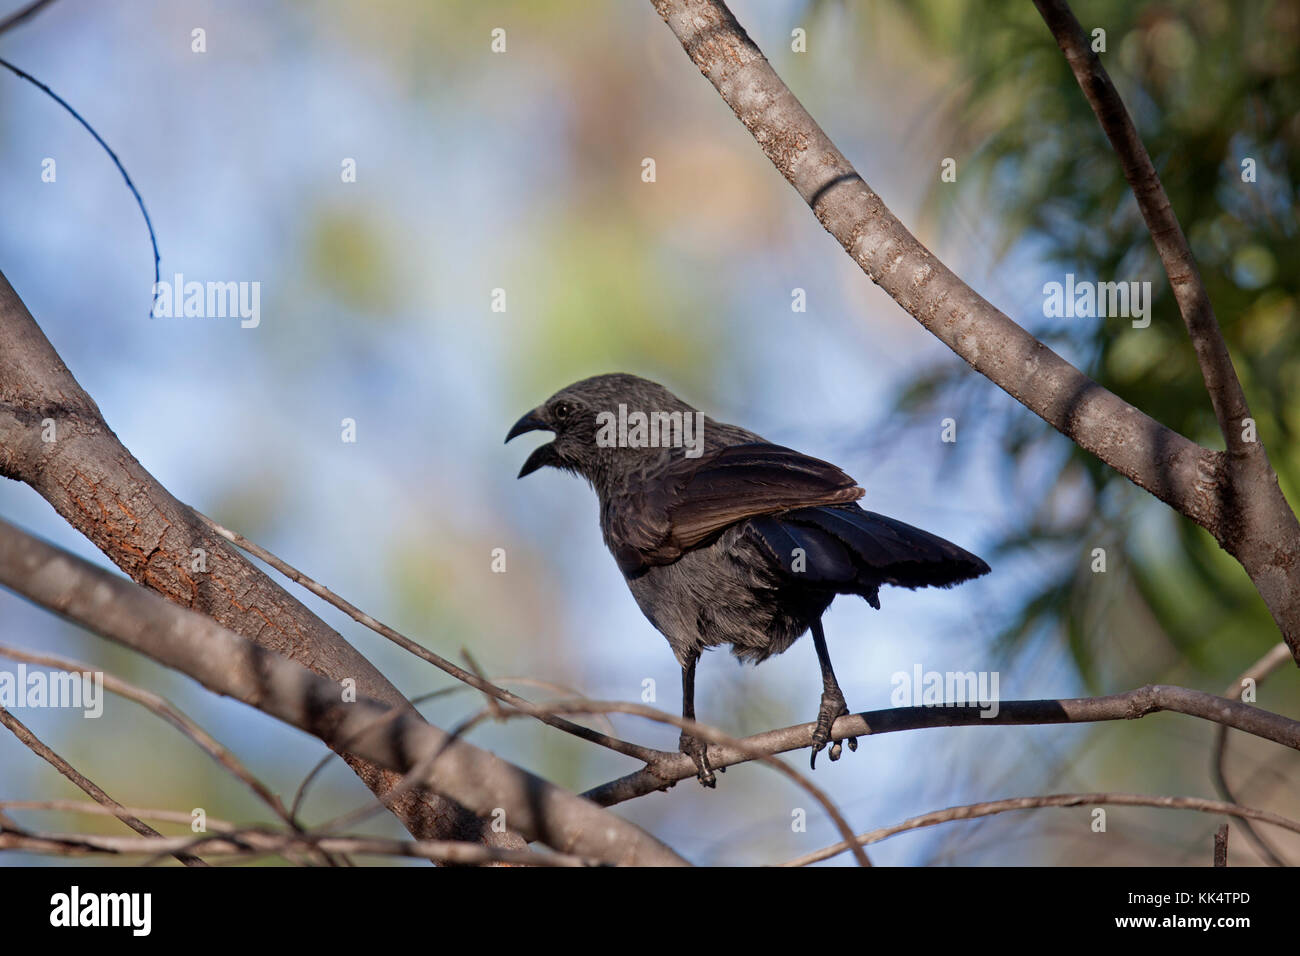 Apostlebird calling from its perch on branch of tree in Queensland Australia - Stock Image